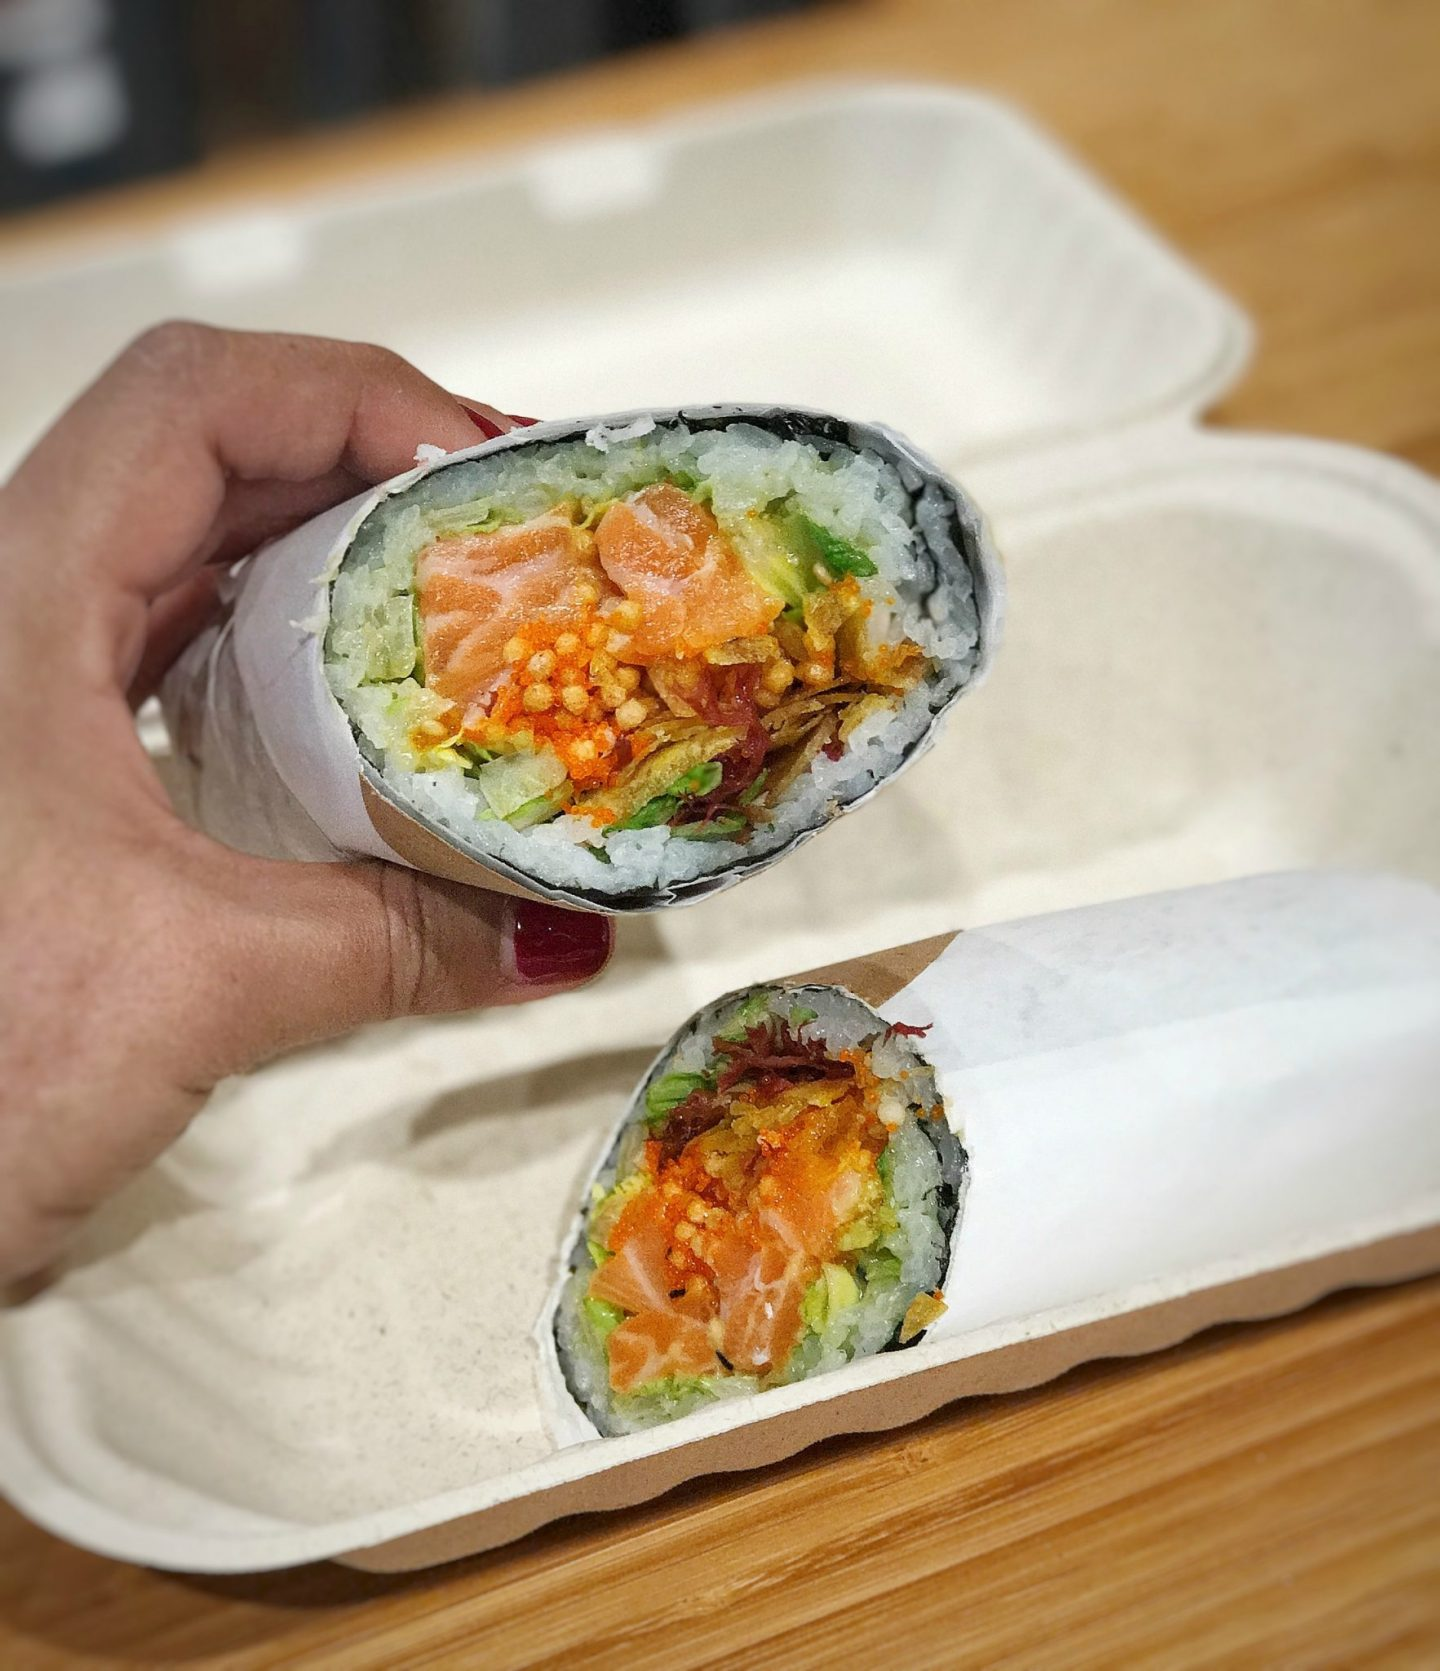 Review of Sushirrito NYC – A sushi burrito concept